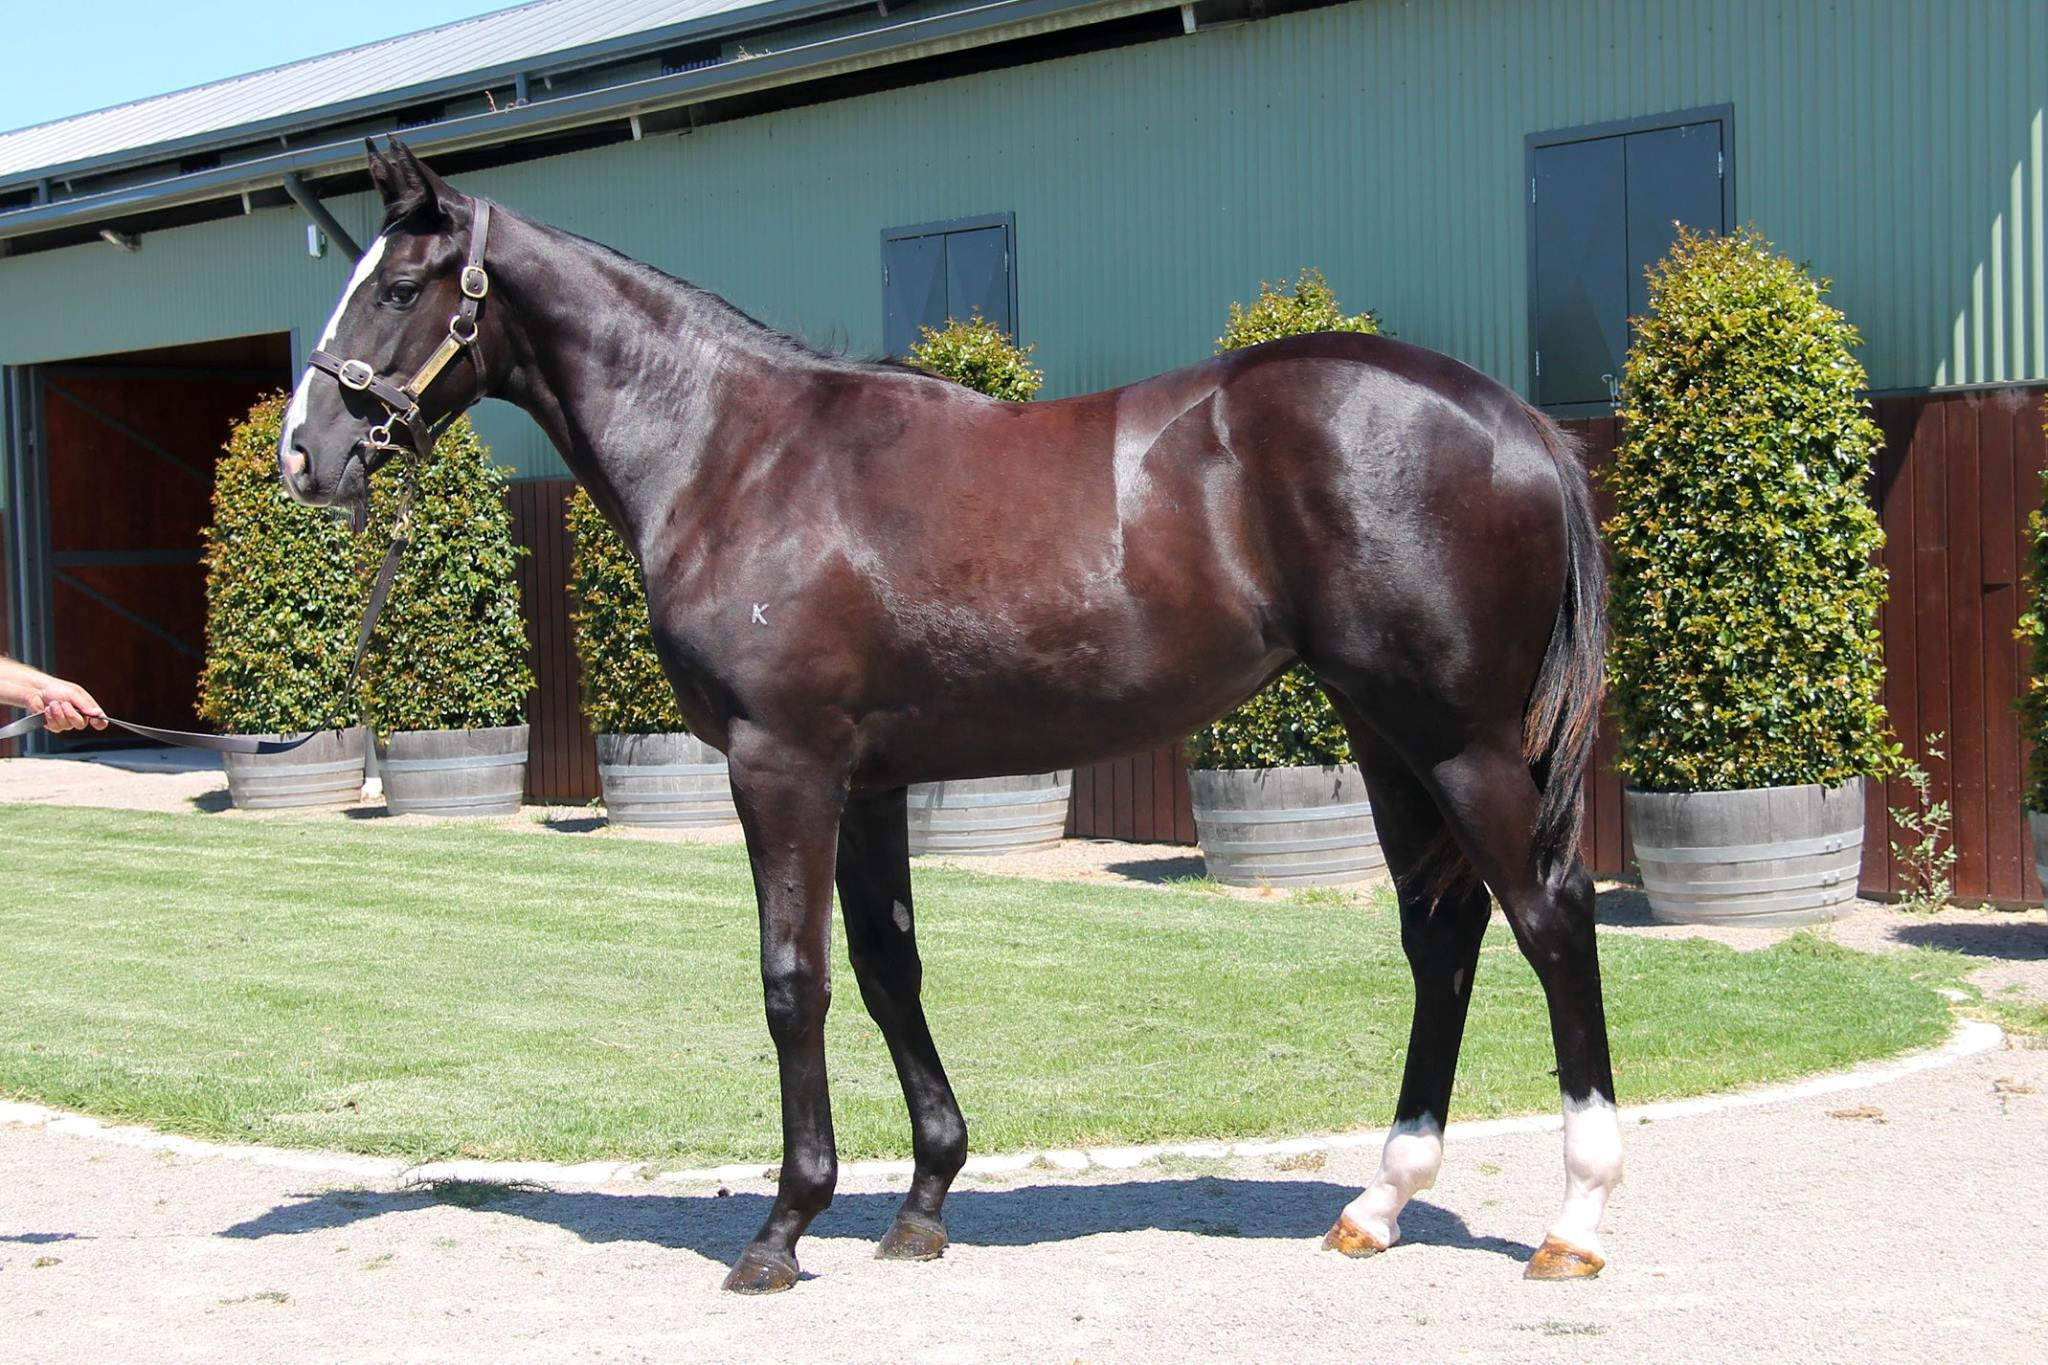 LOT 448  SIRE: Written Tycoon  DAM: Witwatersrand (IRE)  Brown Filly  PURCHASER: Bjorn Baker Racing Pty Ltd  PRICE: $160,000.00